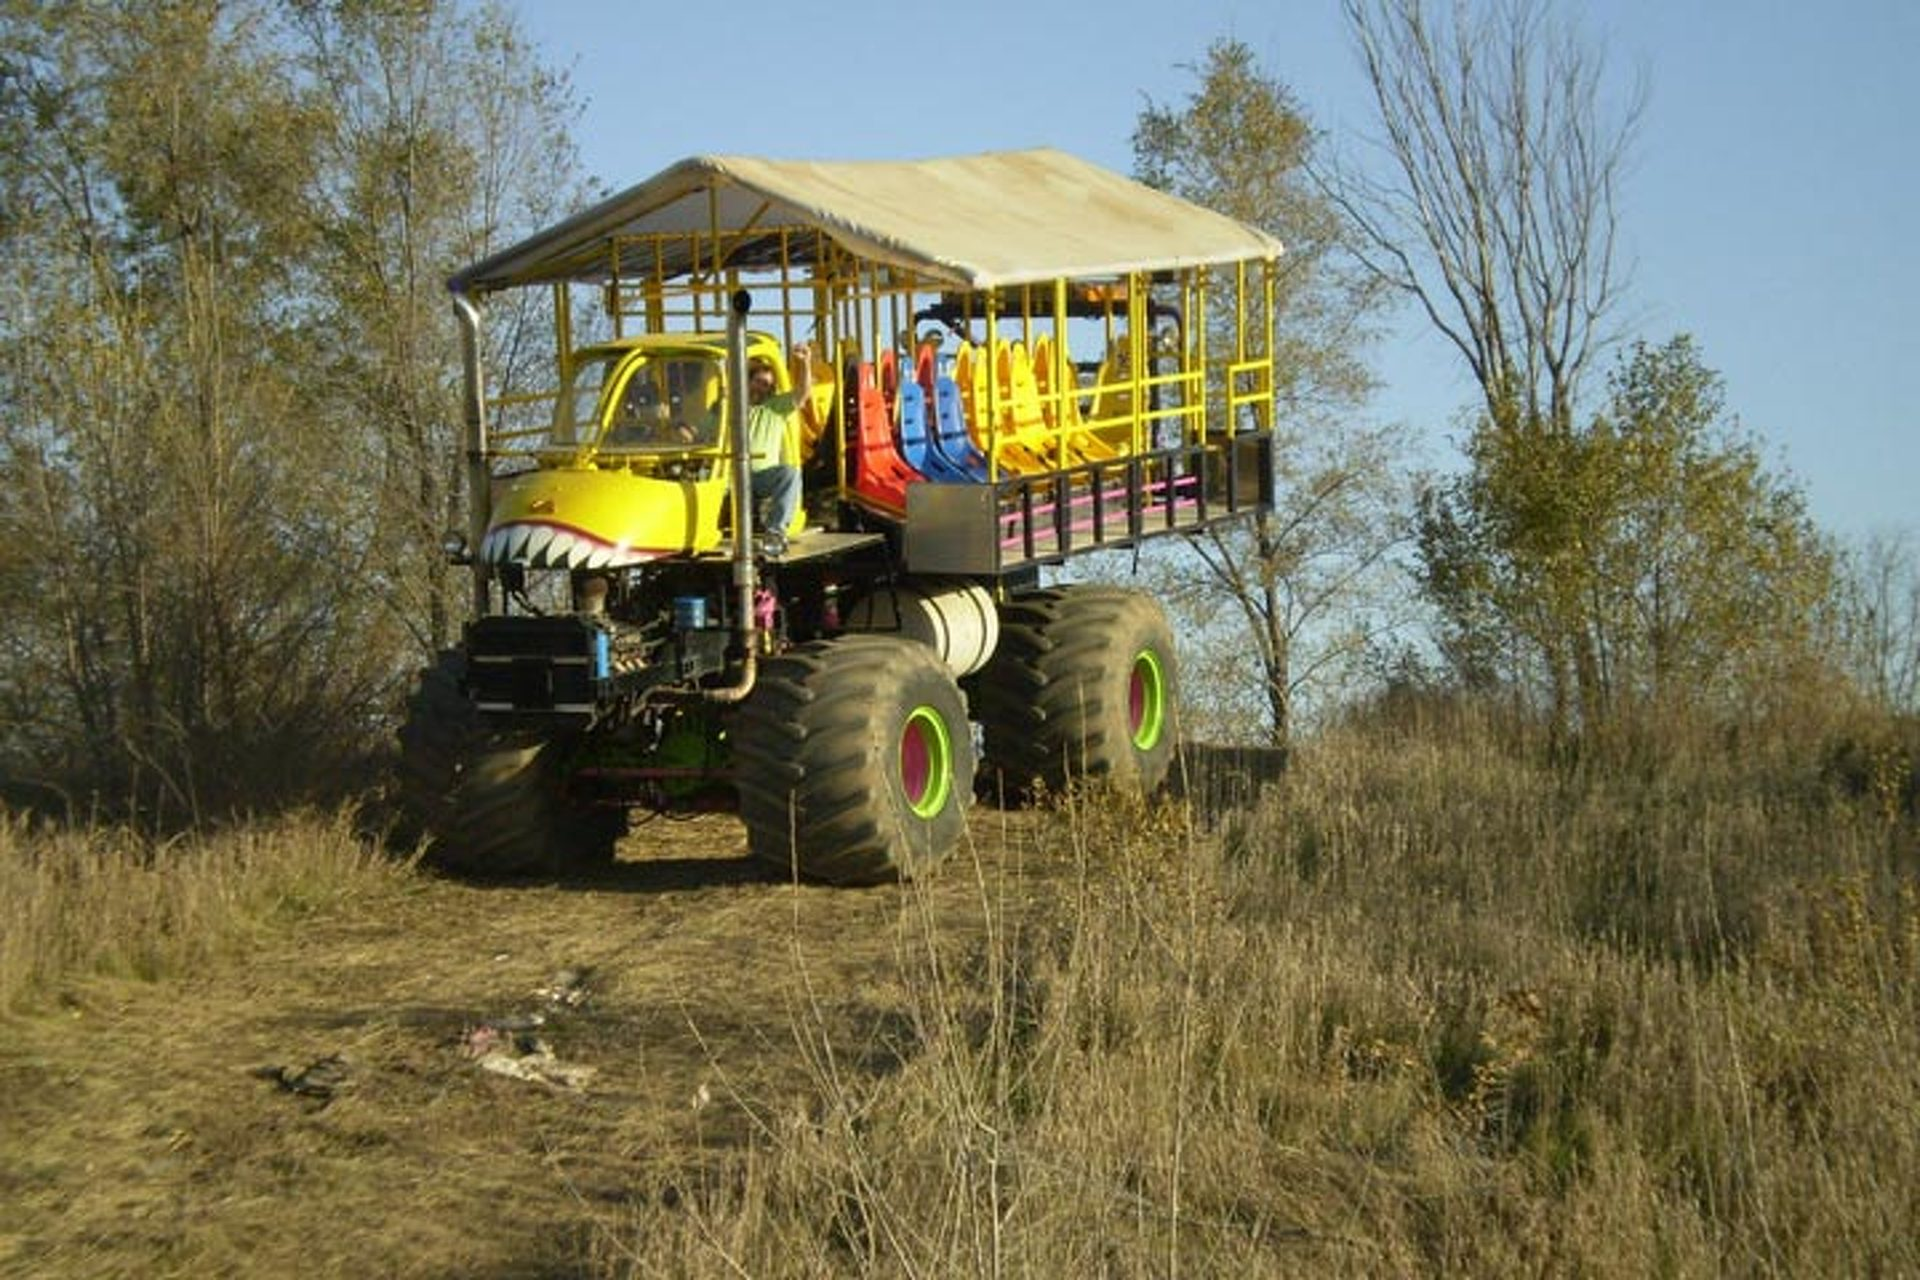 Make this 28-Seat Monster Truck Yours for Only $600K